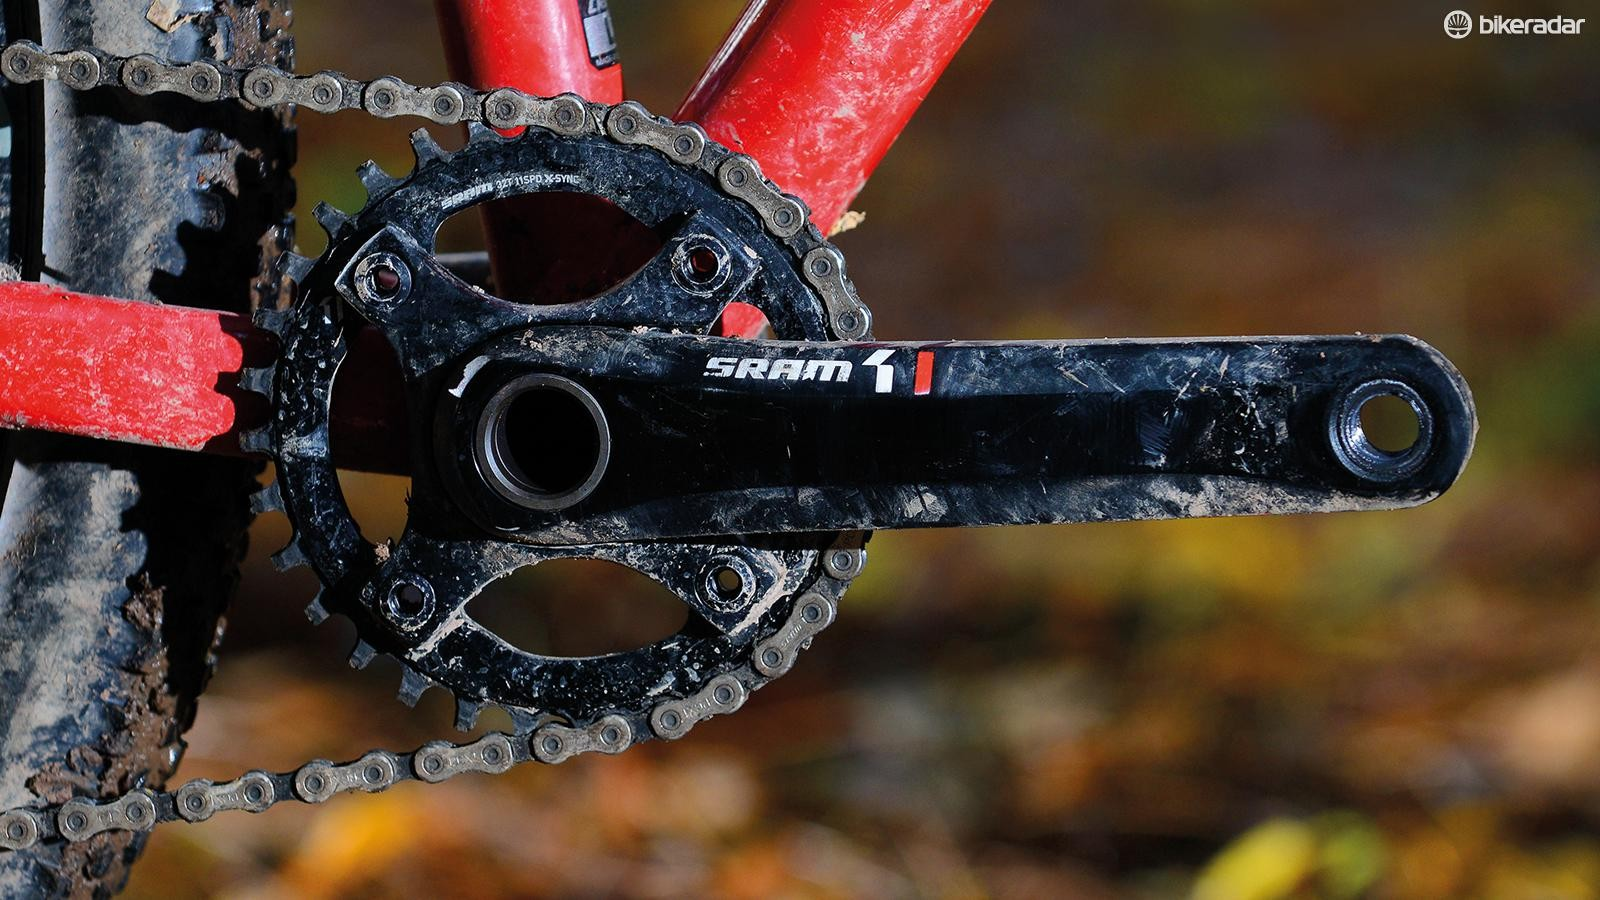 Alloy SRAM X1 crank arms carry a 44g weight penalty but are cheaper and stiffer than carbon